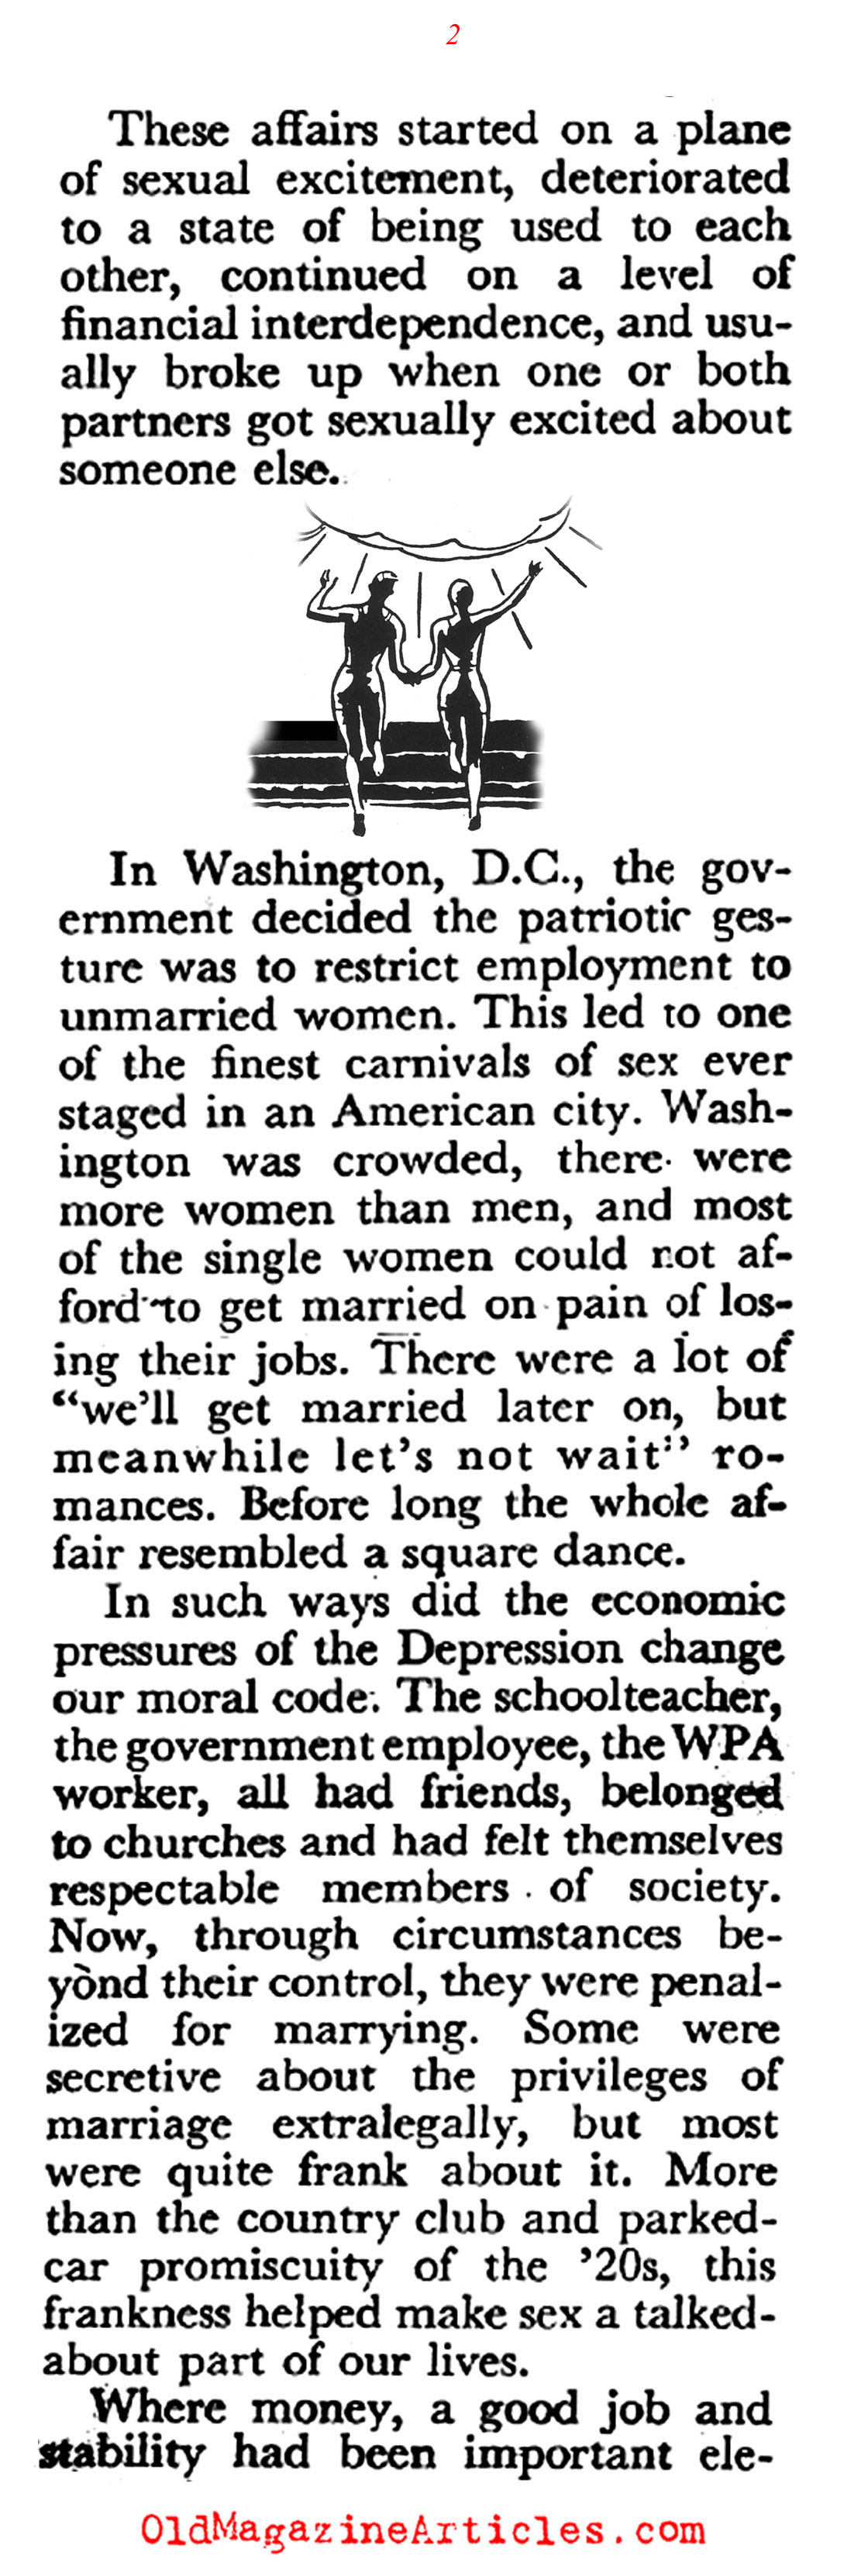 The Great Depression and the Sexes (Coronet Magazine, 1947)